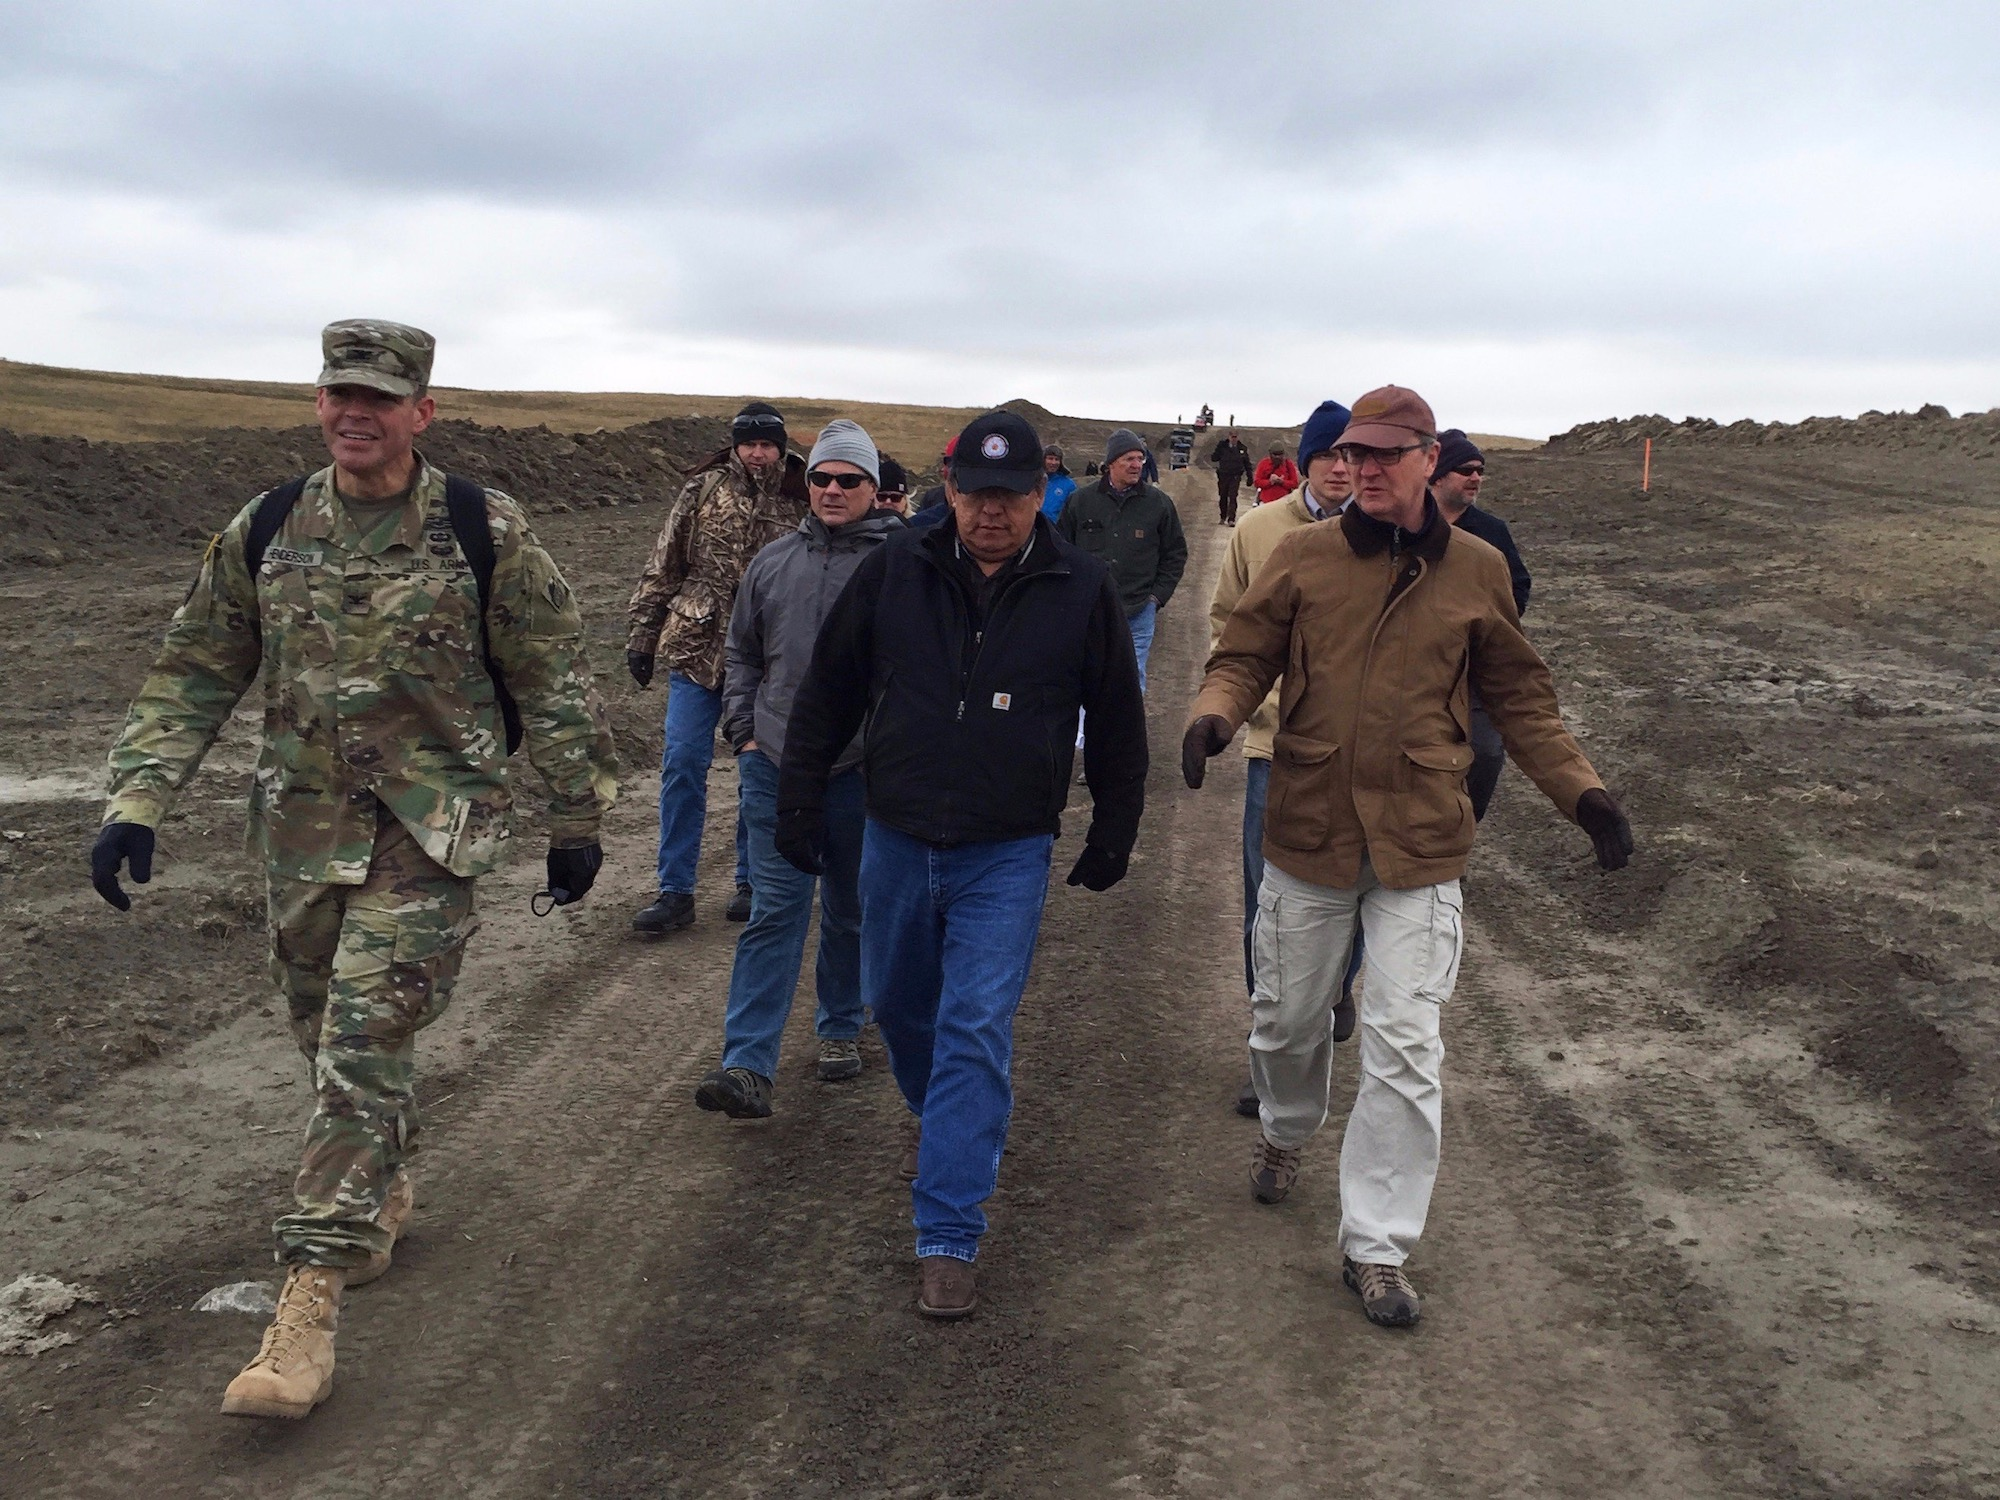 North Dakota agency defends request for small fine against Dakota Access